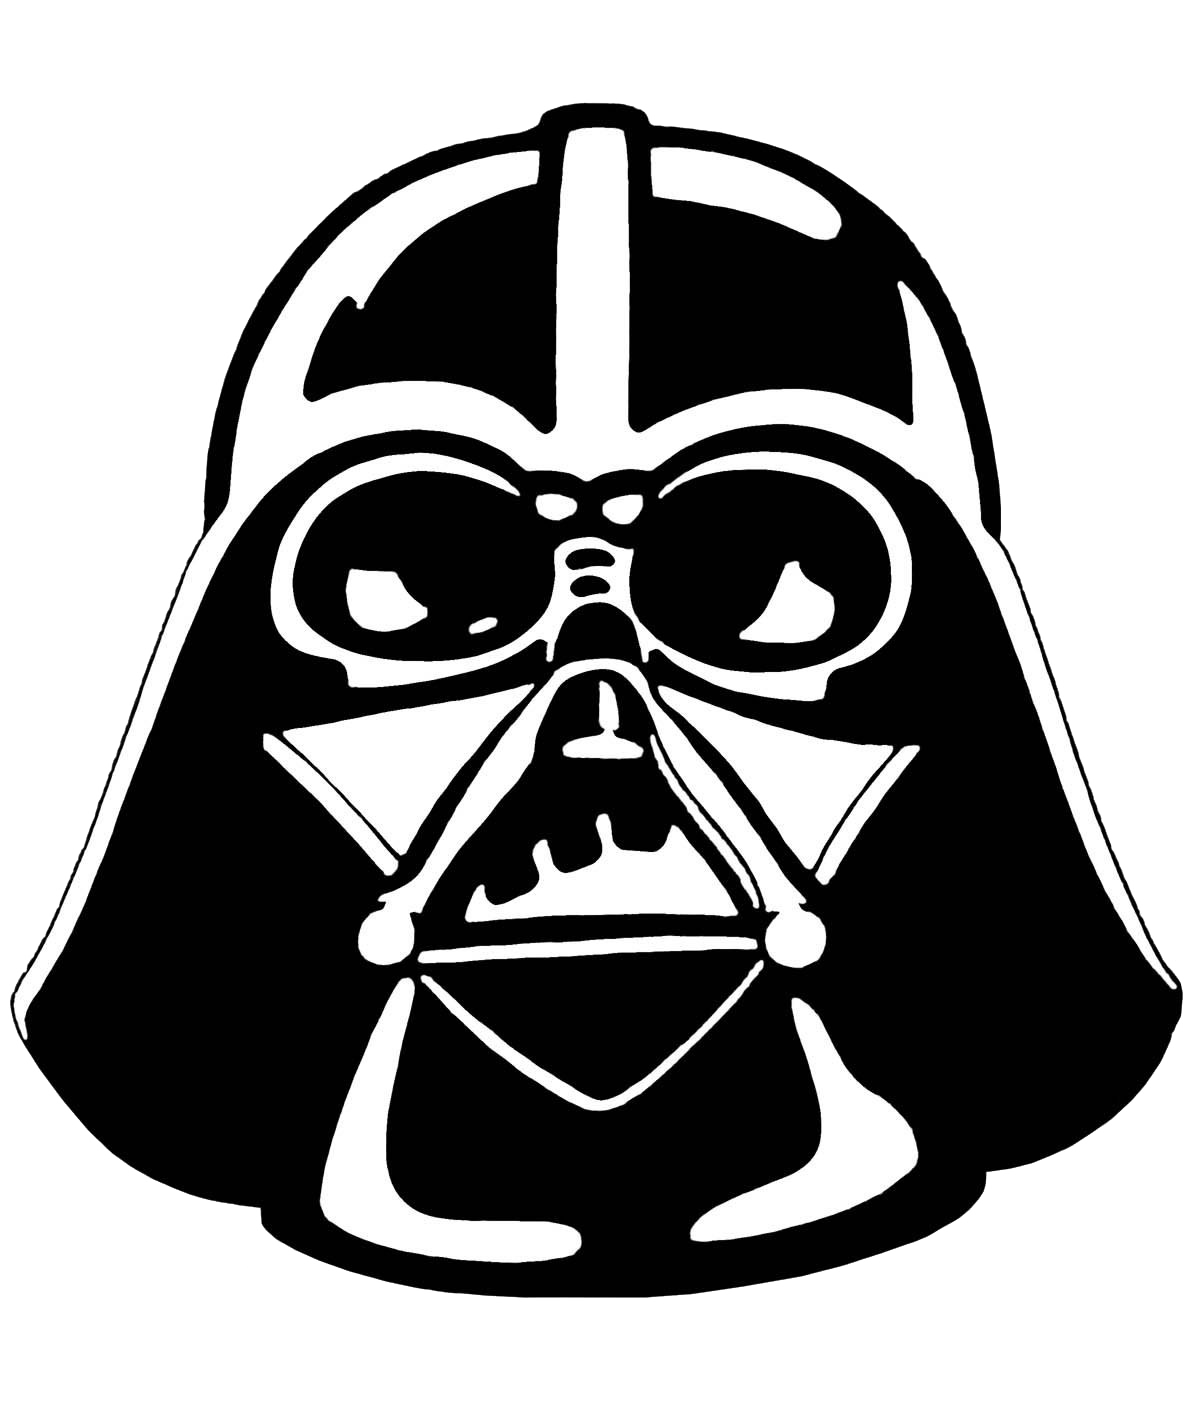 Darth vader clipart. Line drawing at getdrawings